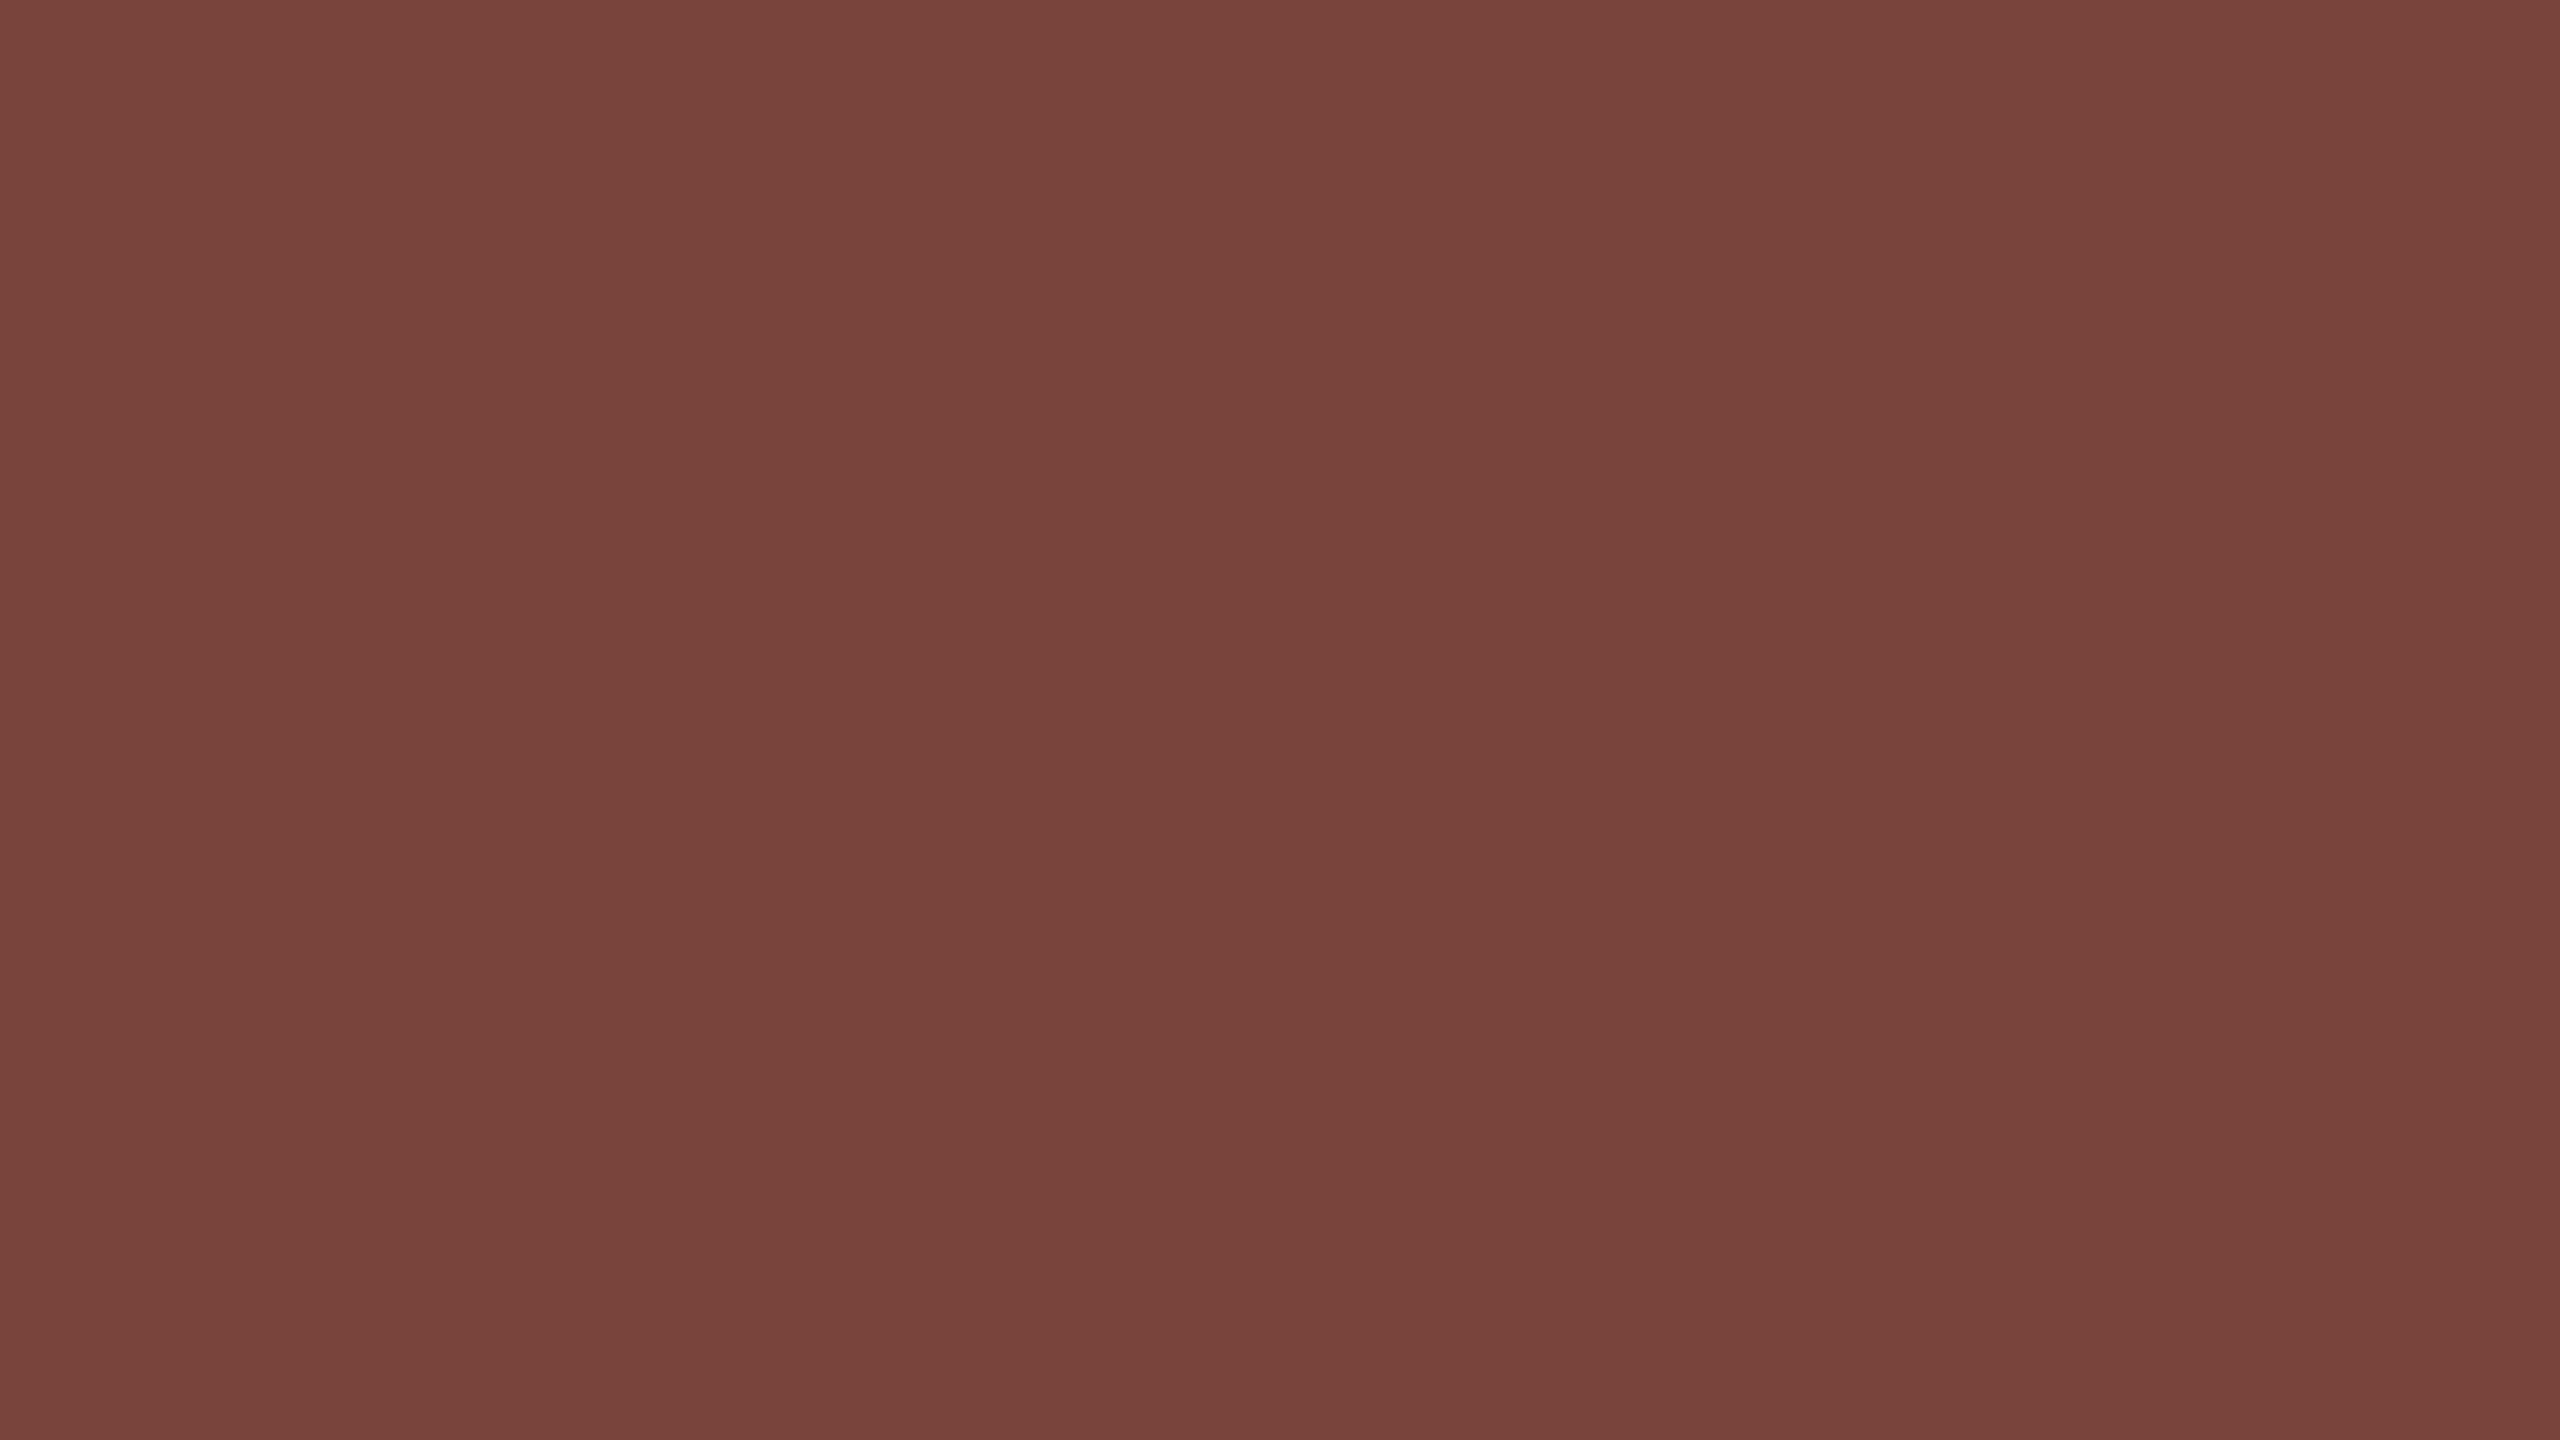 2560x1440 Medium Tuscan Red Solid Color Background